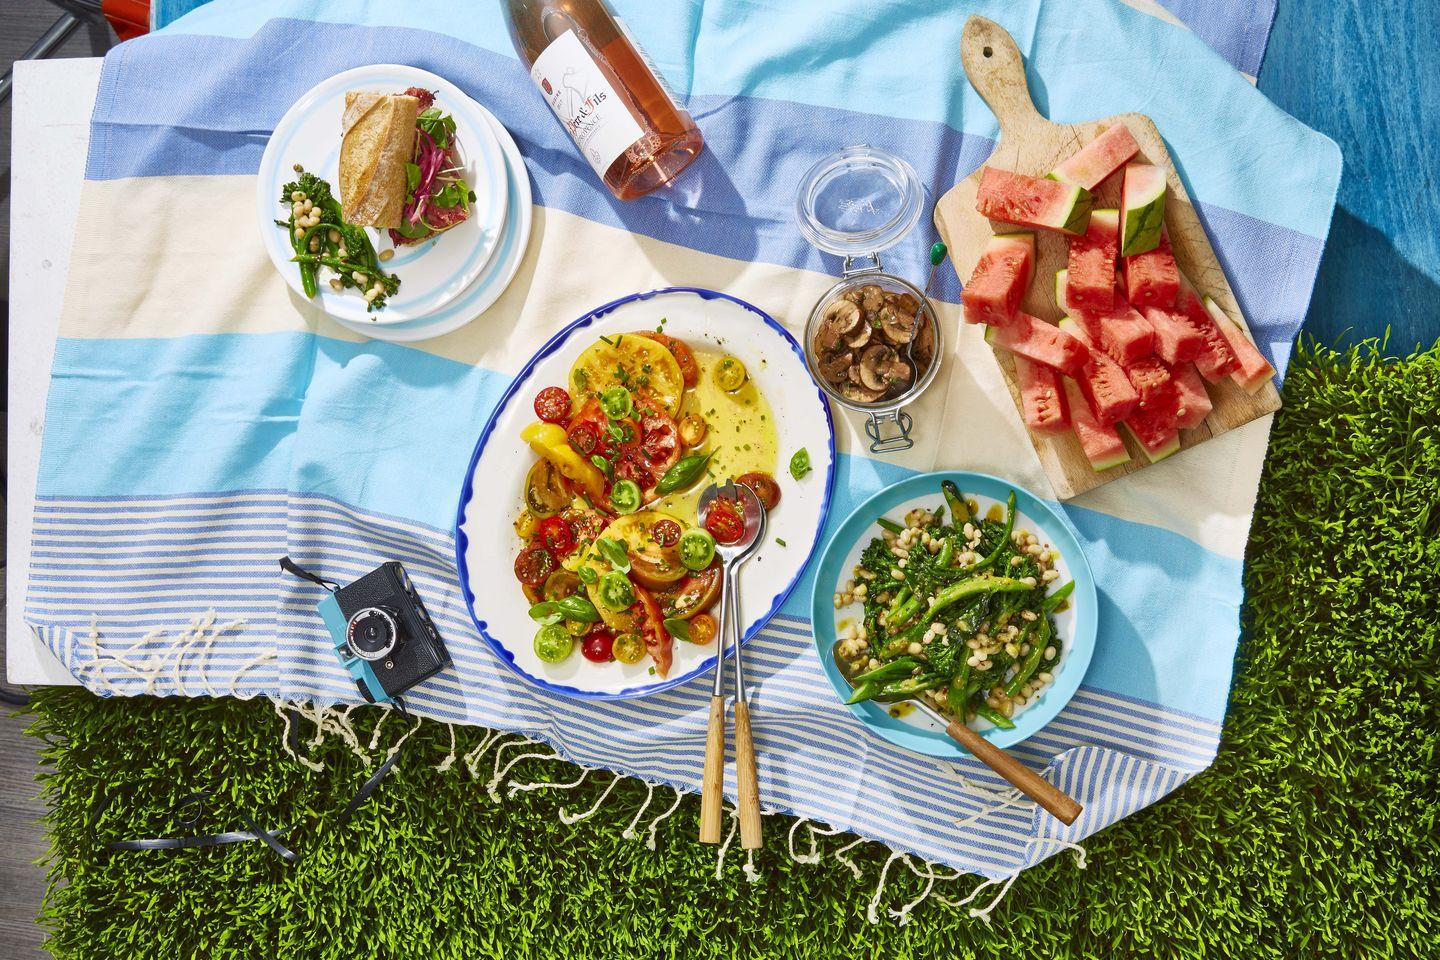 "<p>This simply dressed salad is perfect a perfect summertime side.</p><p><strong><a href=""https://www.countryliving.com/food-drinks/a33217435/heirloom-tomato-salad-recipe/"" rel=""nofollow noopener"" target=""_blank"" data-ylk=""slk:Get the recipe"" class=""link rapid-noclick-resp"">Get the recipe</a>.</strong></p>"